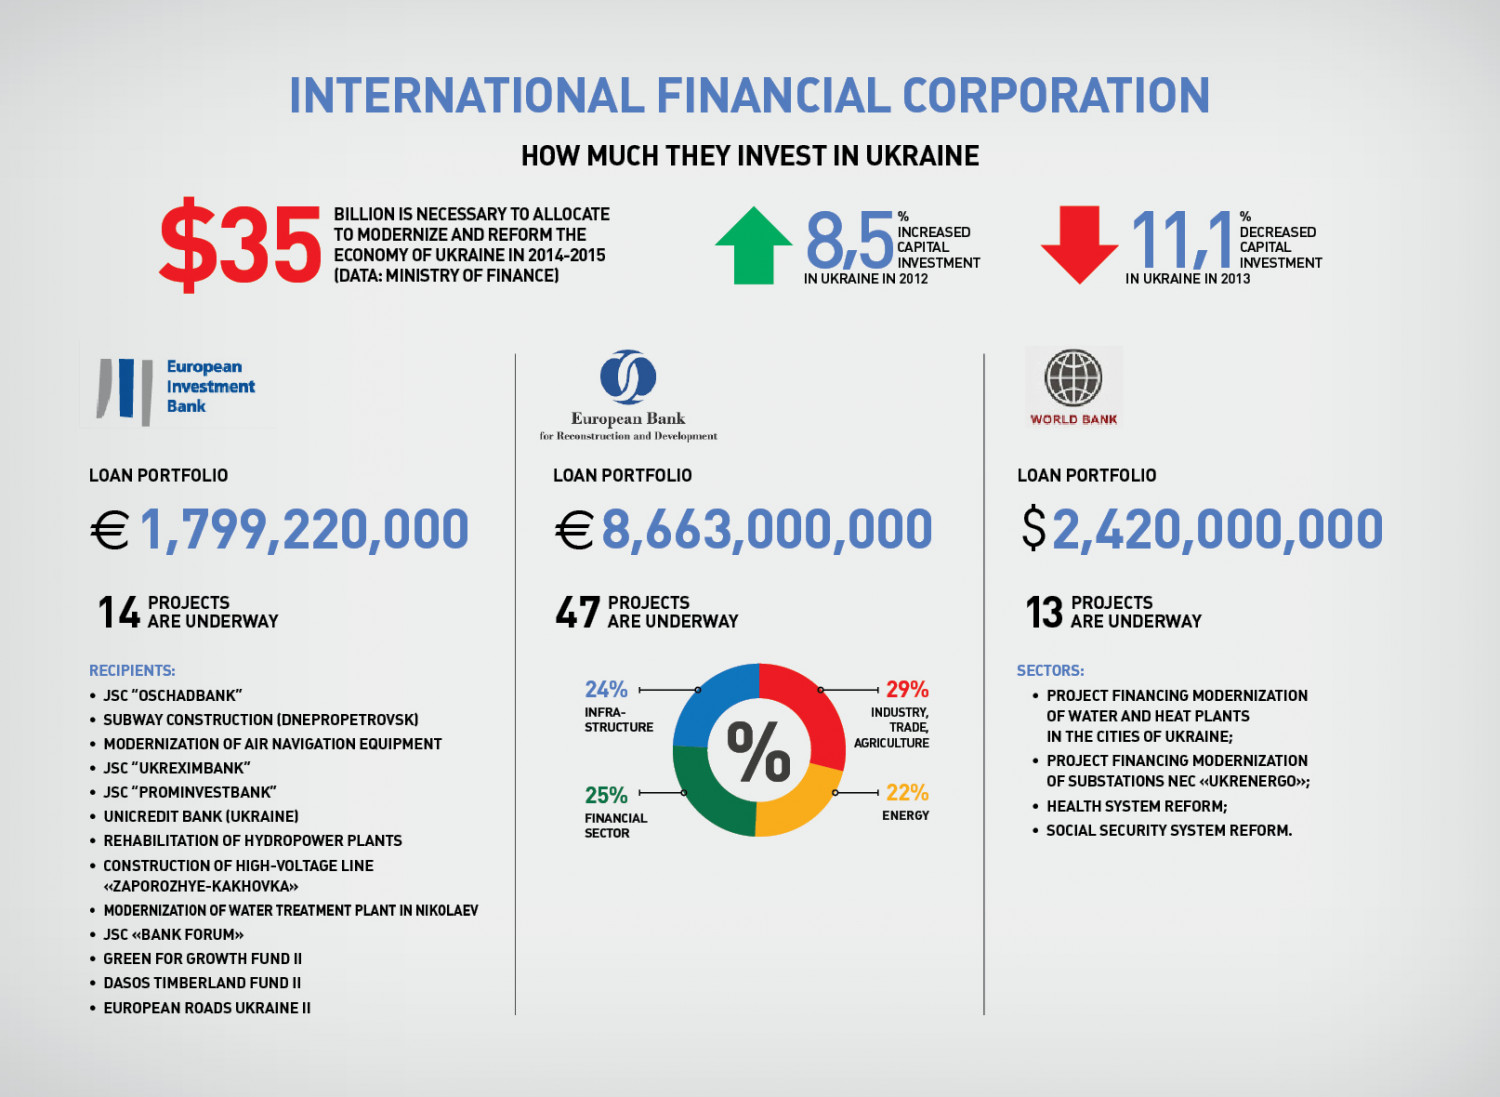 International Financial Corporation: How Much They Invest in Ukraine? Infographic